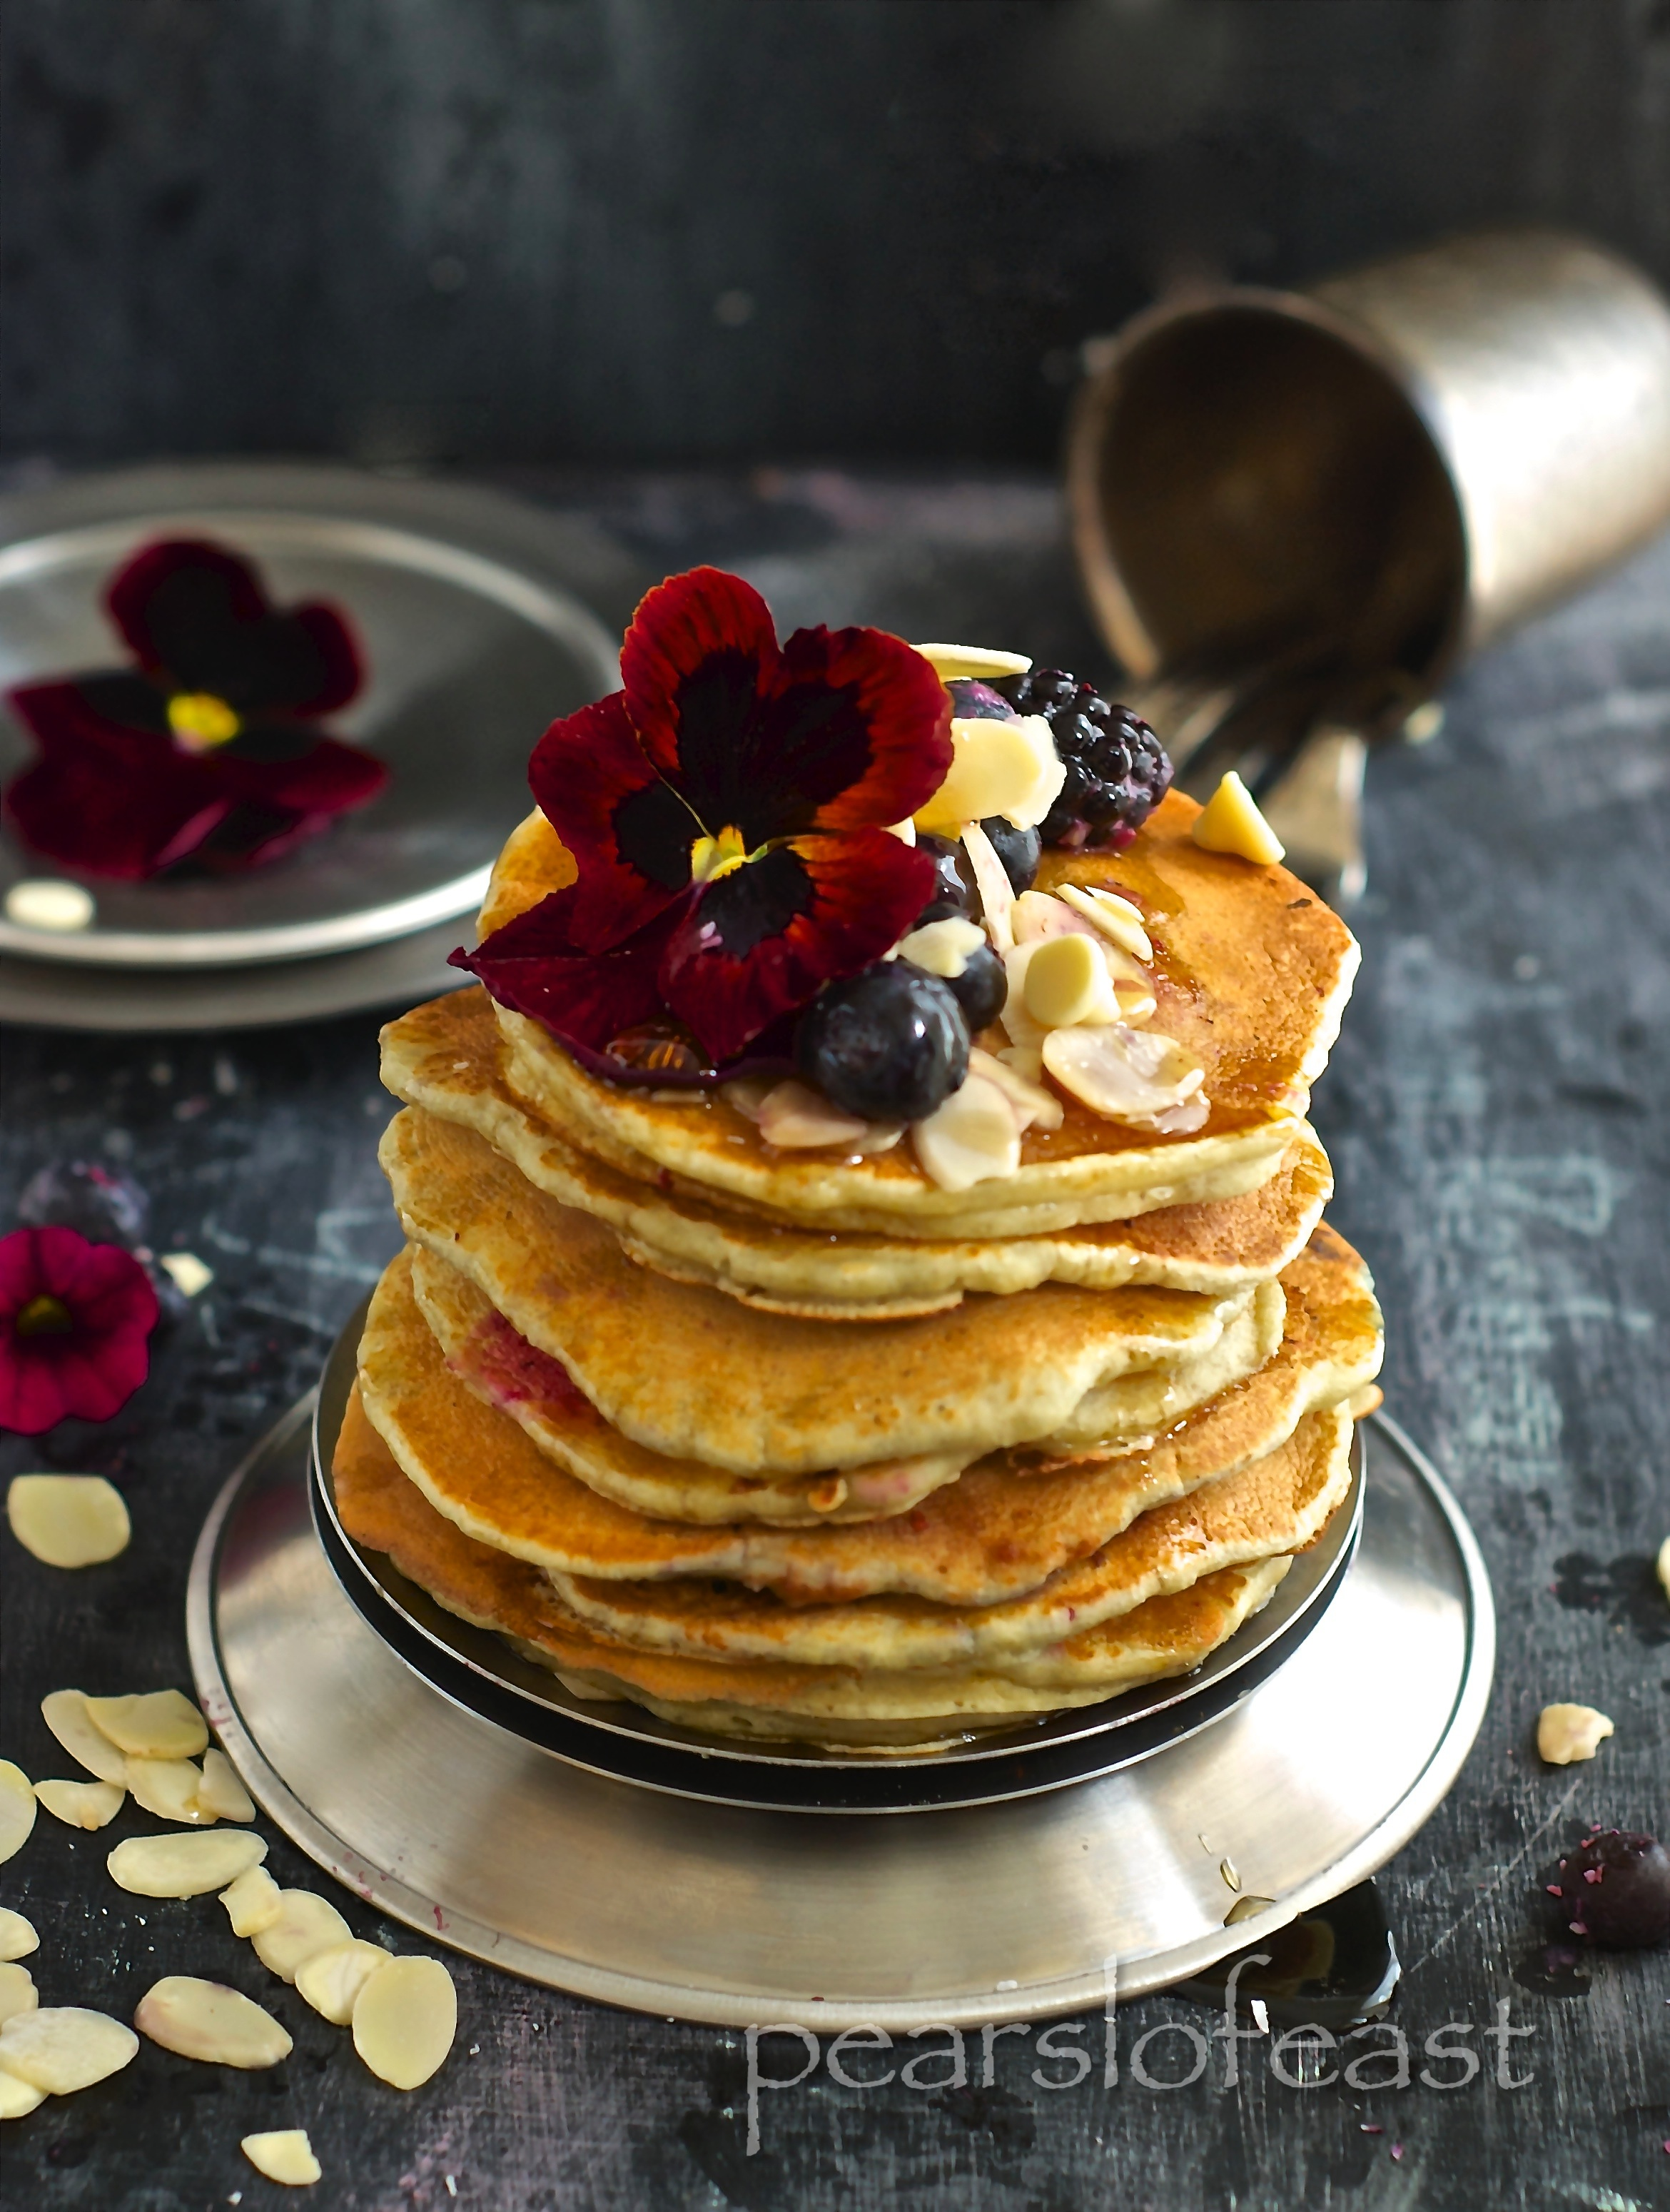 Easy and quick pancakes